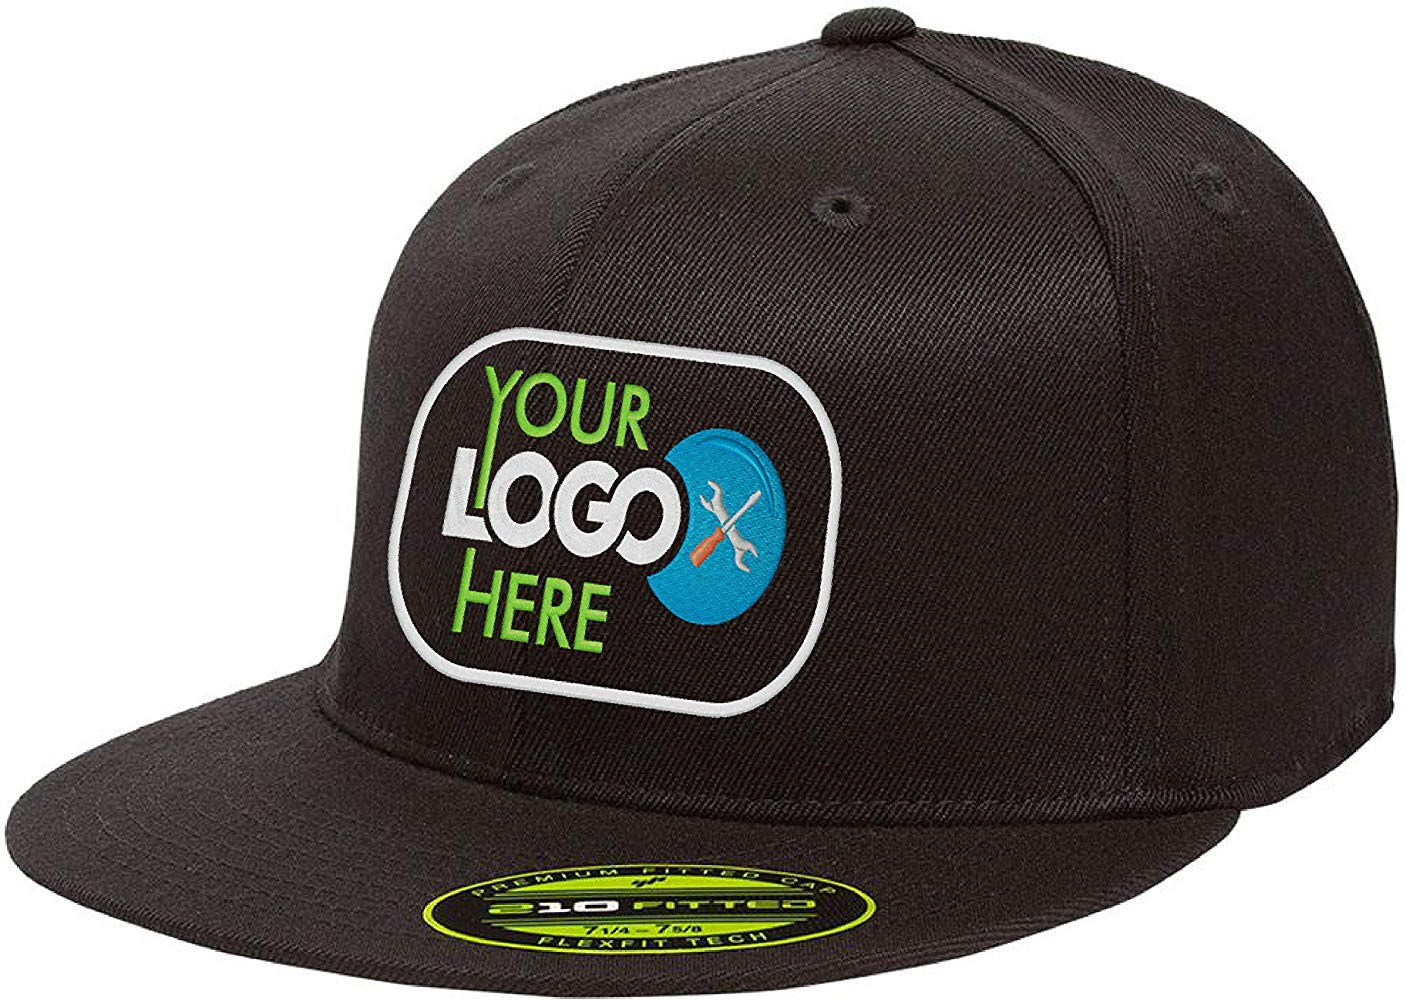 Personalized Flexfit 210 Cap. Custom Logo Hat. Embroidered. Fitted Flat Bill.